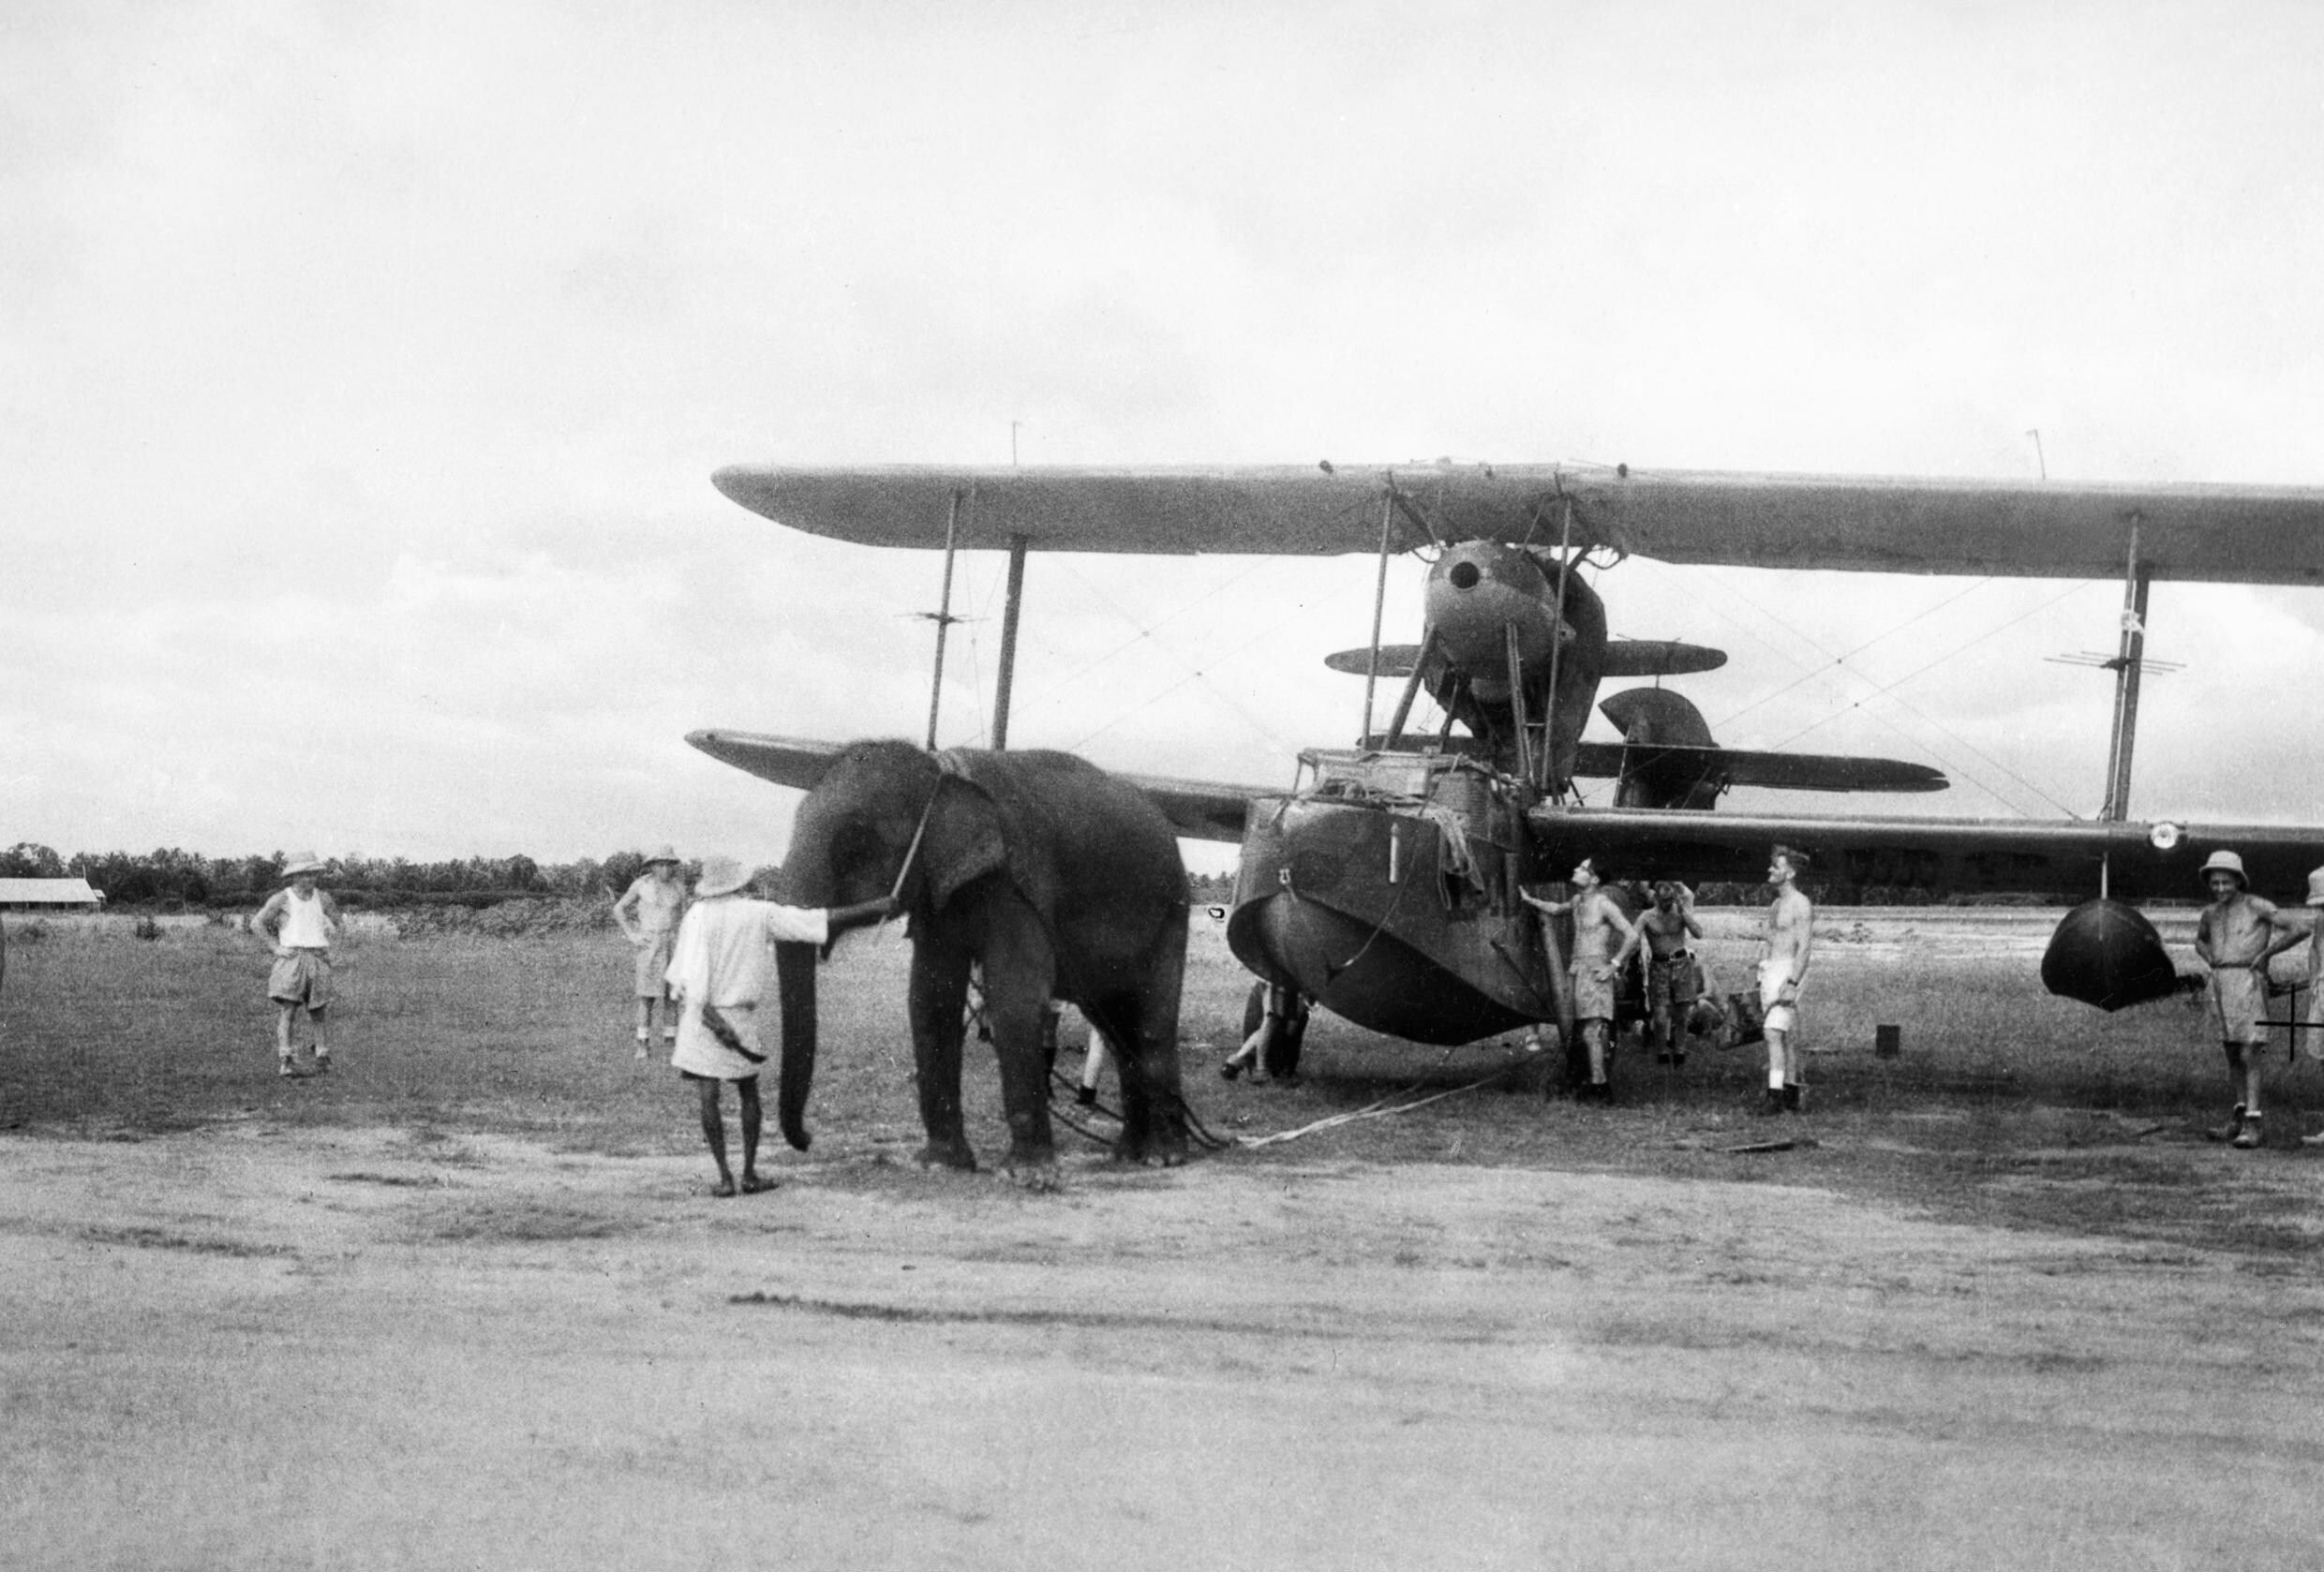 An_elephant_pulling_a_Supermarine_Walrus_aircraft_into_position_at_a_Fleet_Air_Arm_station_in_India,_June_1944._A24291